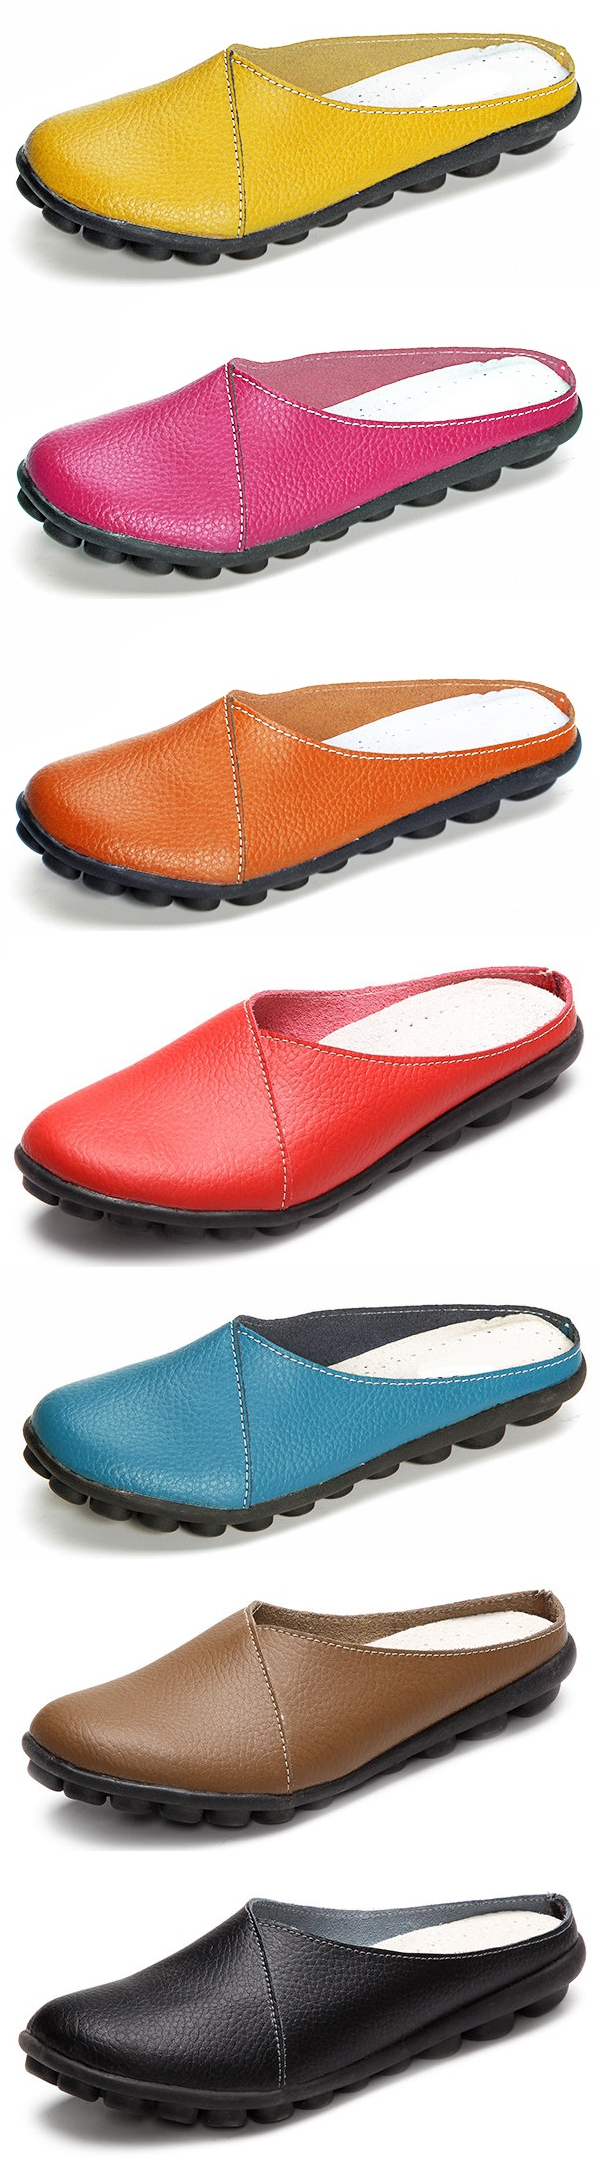 SOCOFY Big Size Pure Color Soft Sole Casual Open Heel Lazy Flat Shoes tmblr.co/….